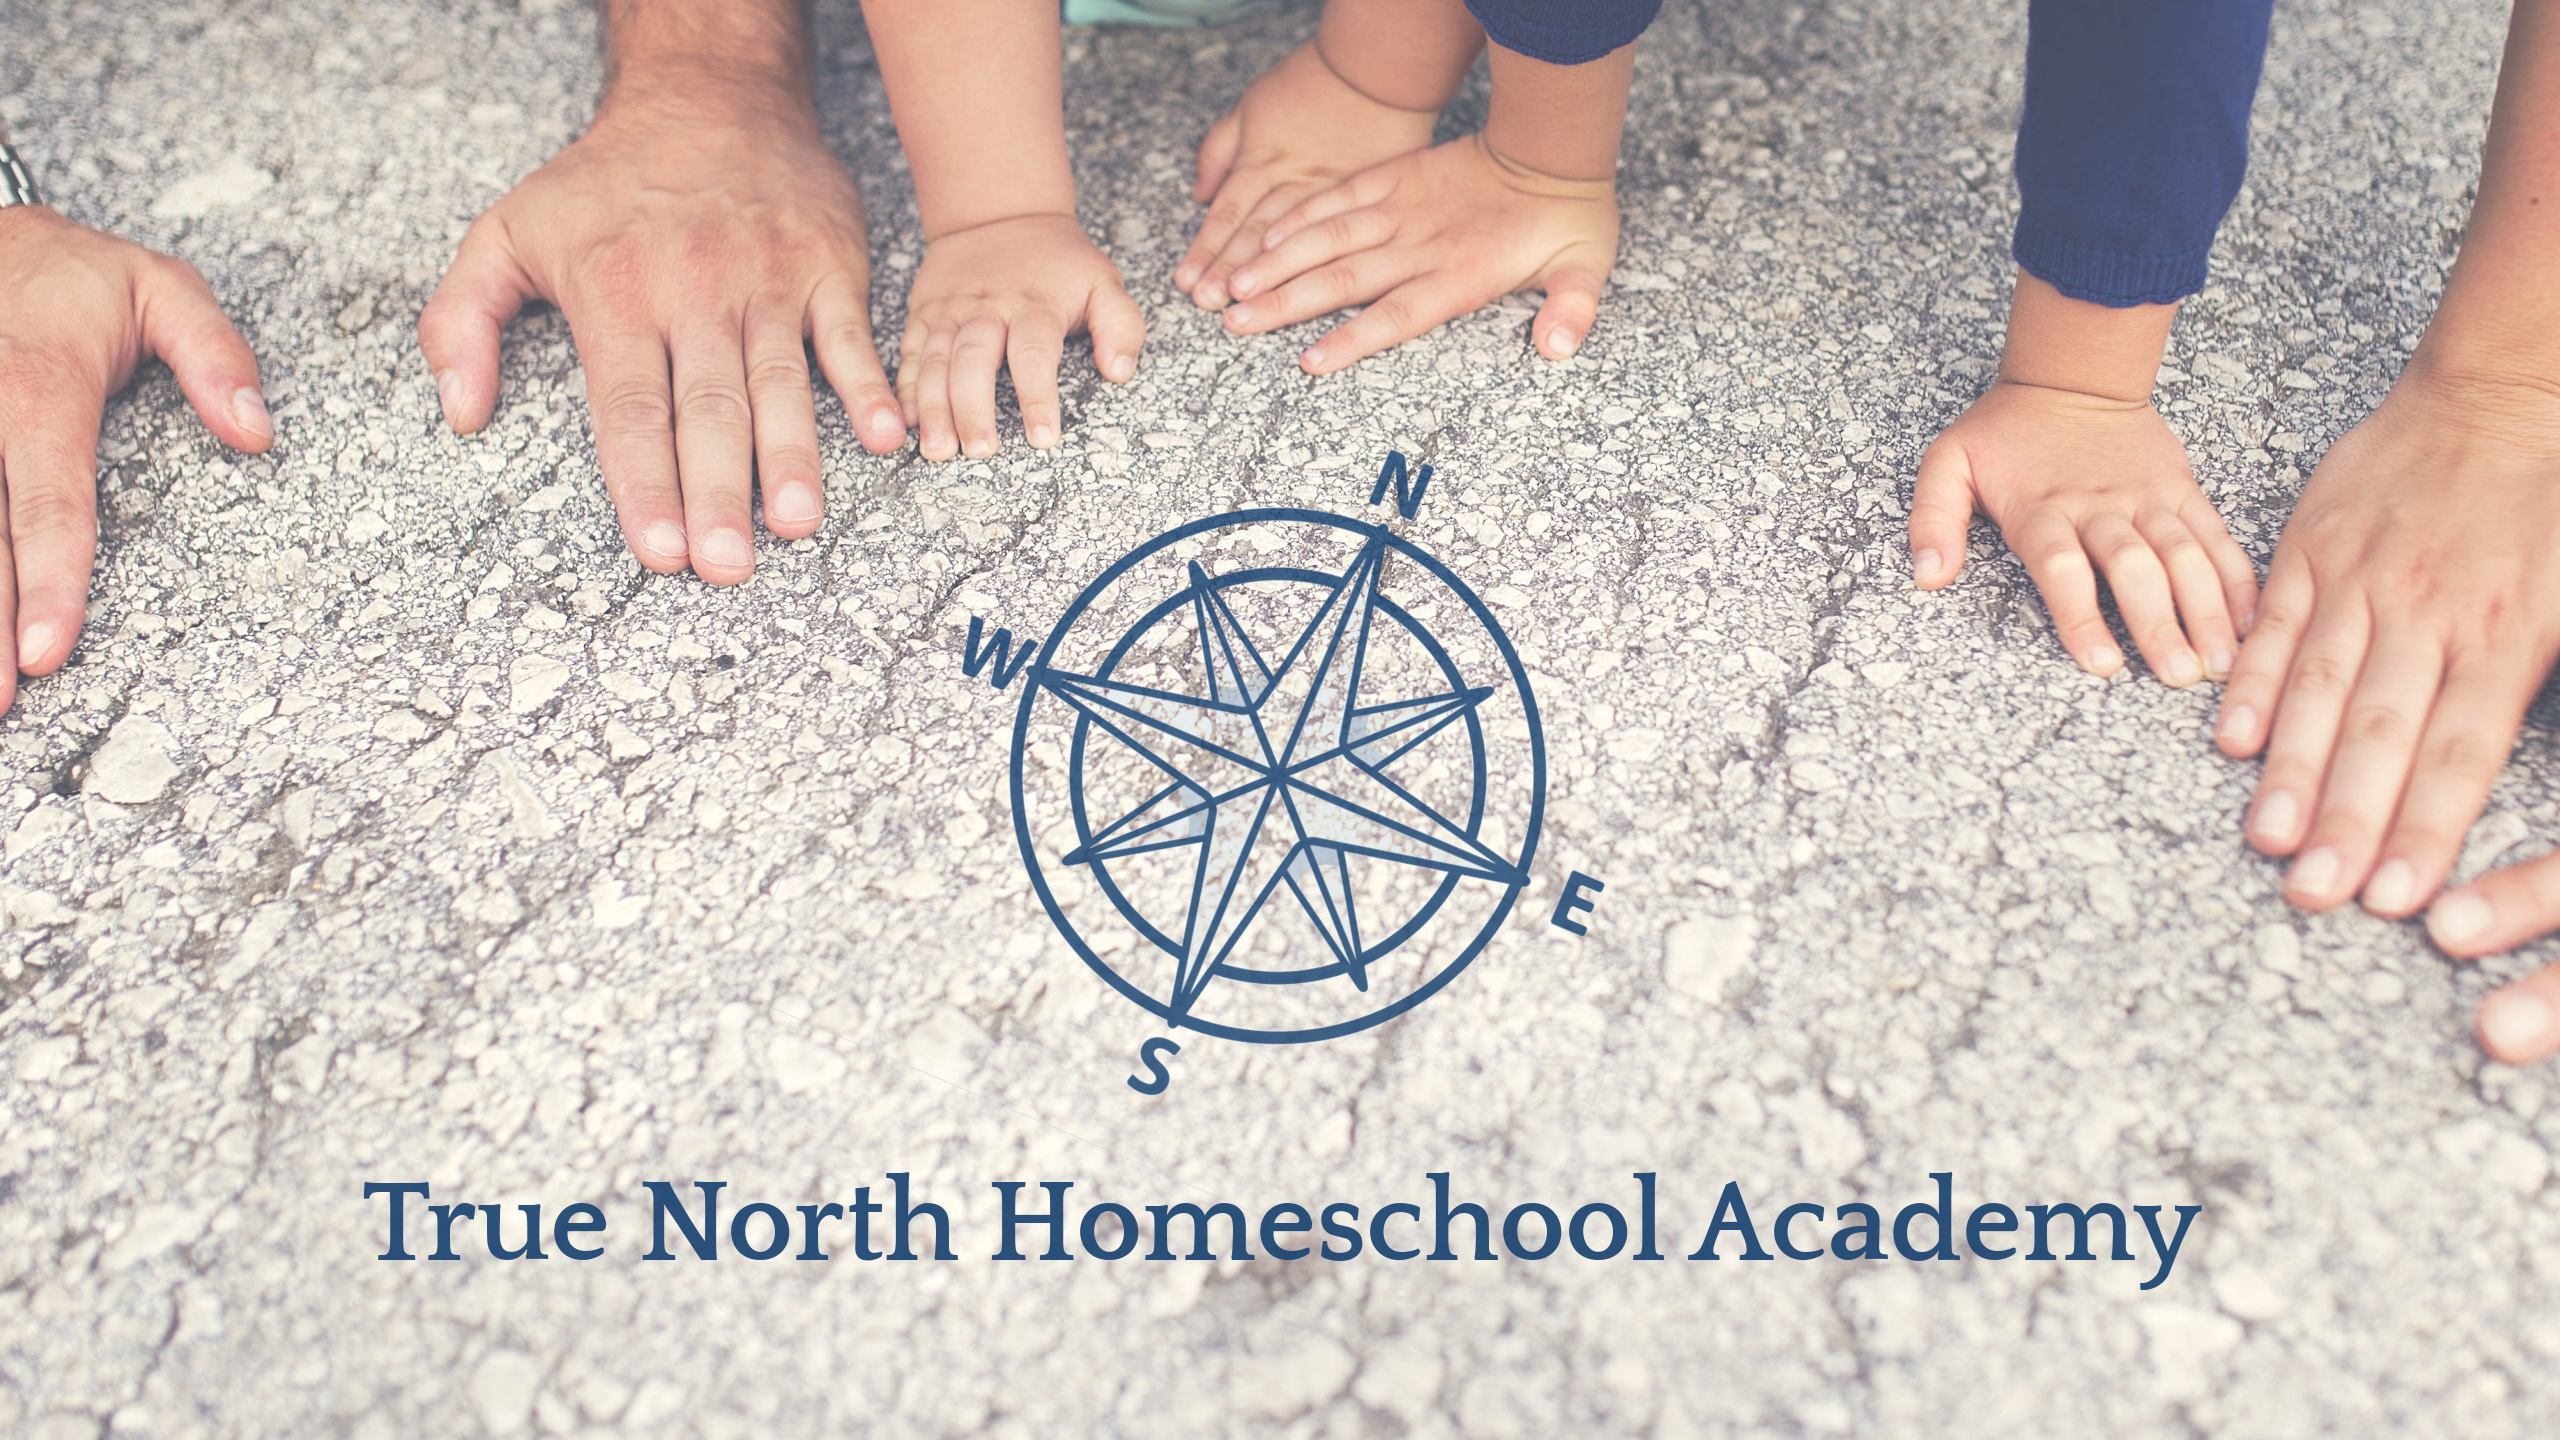 A Family's hands leaning on the ground with the True North Homeschool Academy Compass in the foreground.